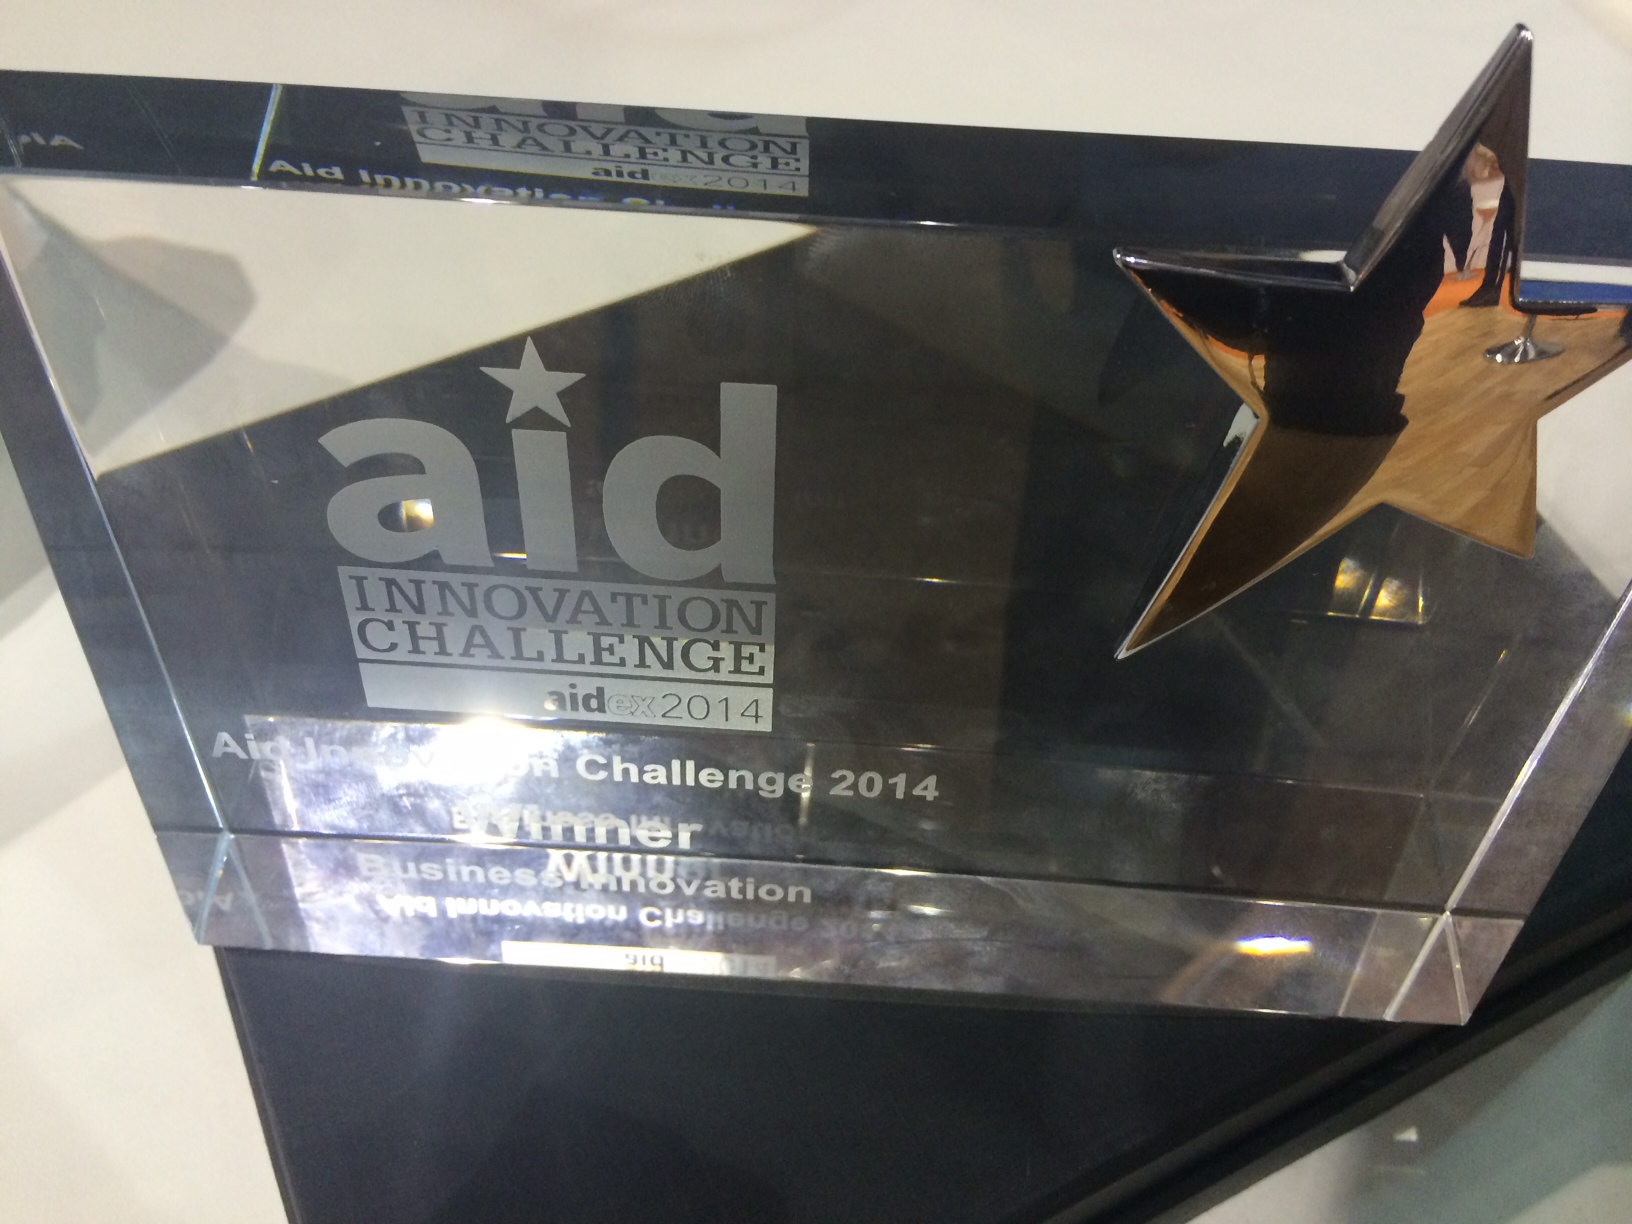 Abstract_From_Infographic_Image_AidEx FR award